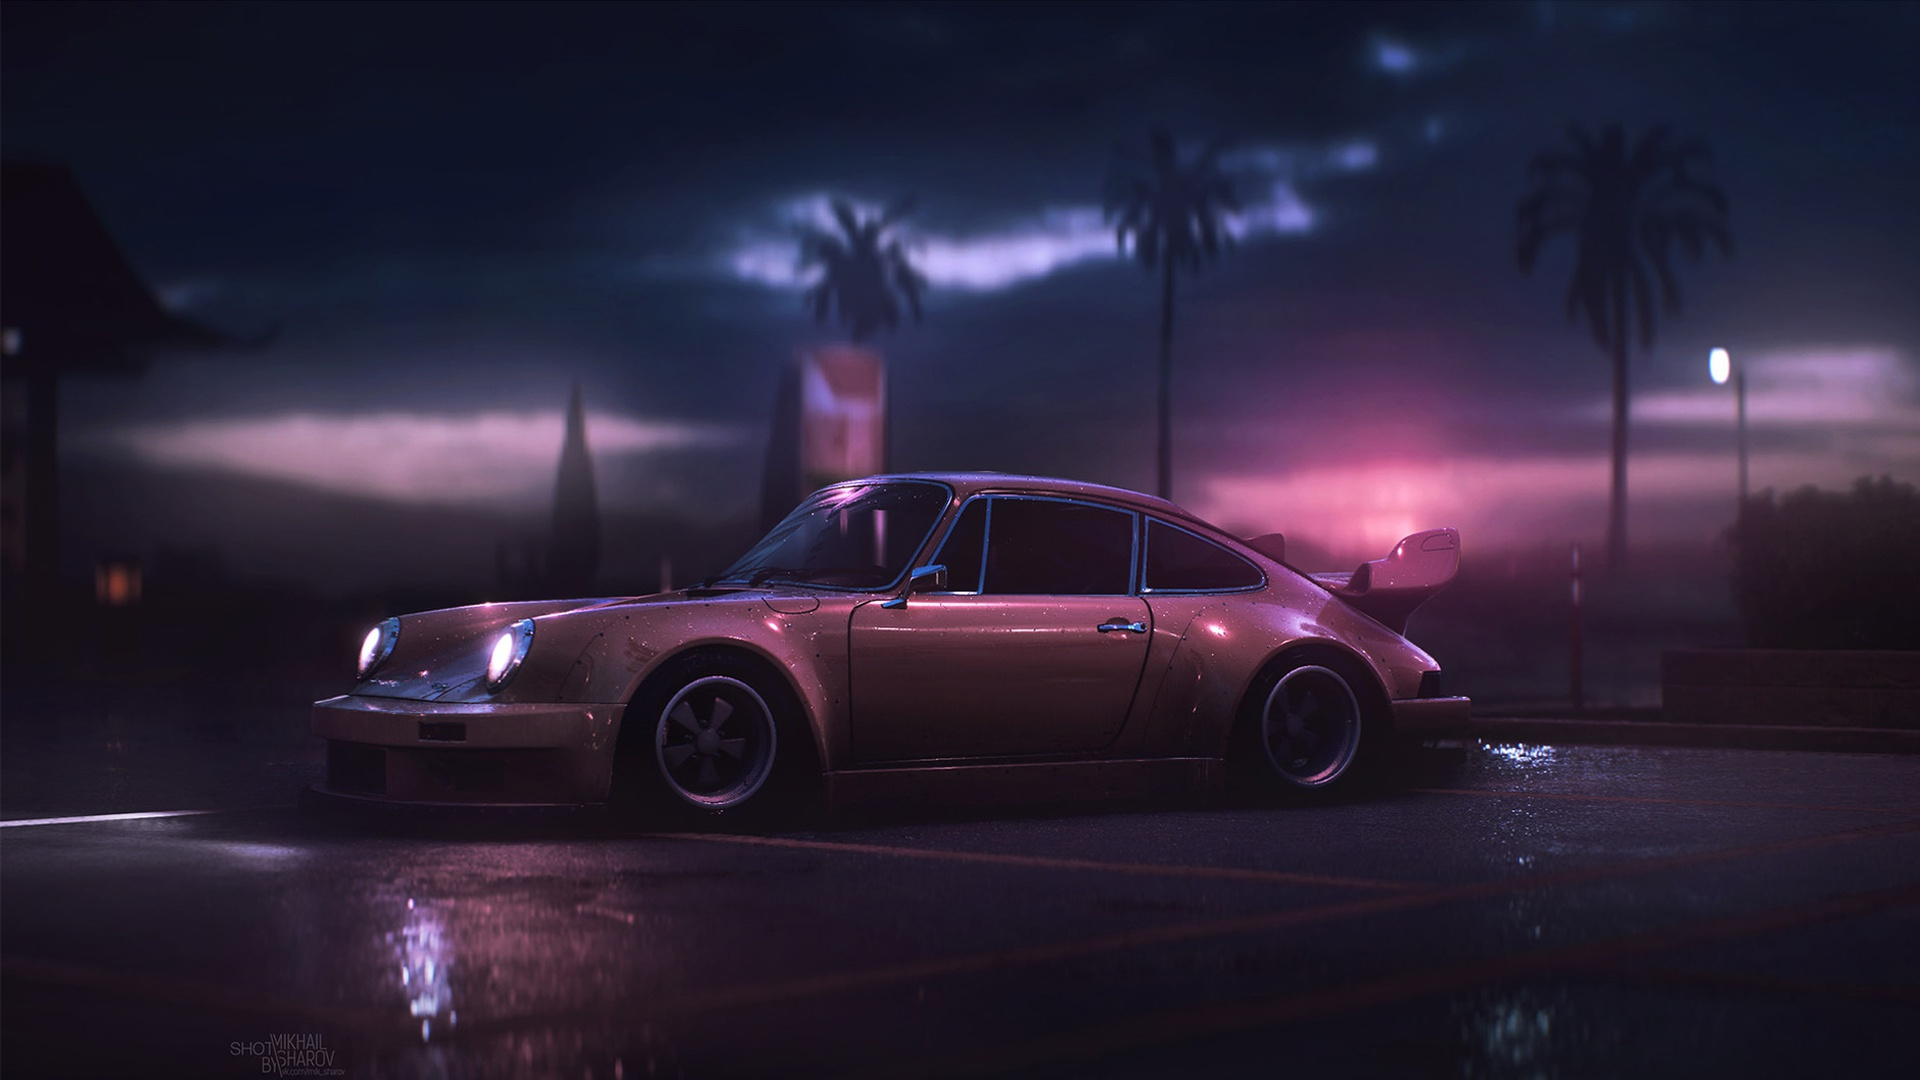 1920x1080 Old Porsche 911 Laptop Full Hd 1080p Hd 4k Wallpapers Images Backgrounds Photos And Pictures